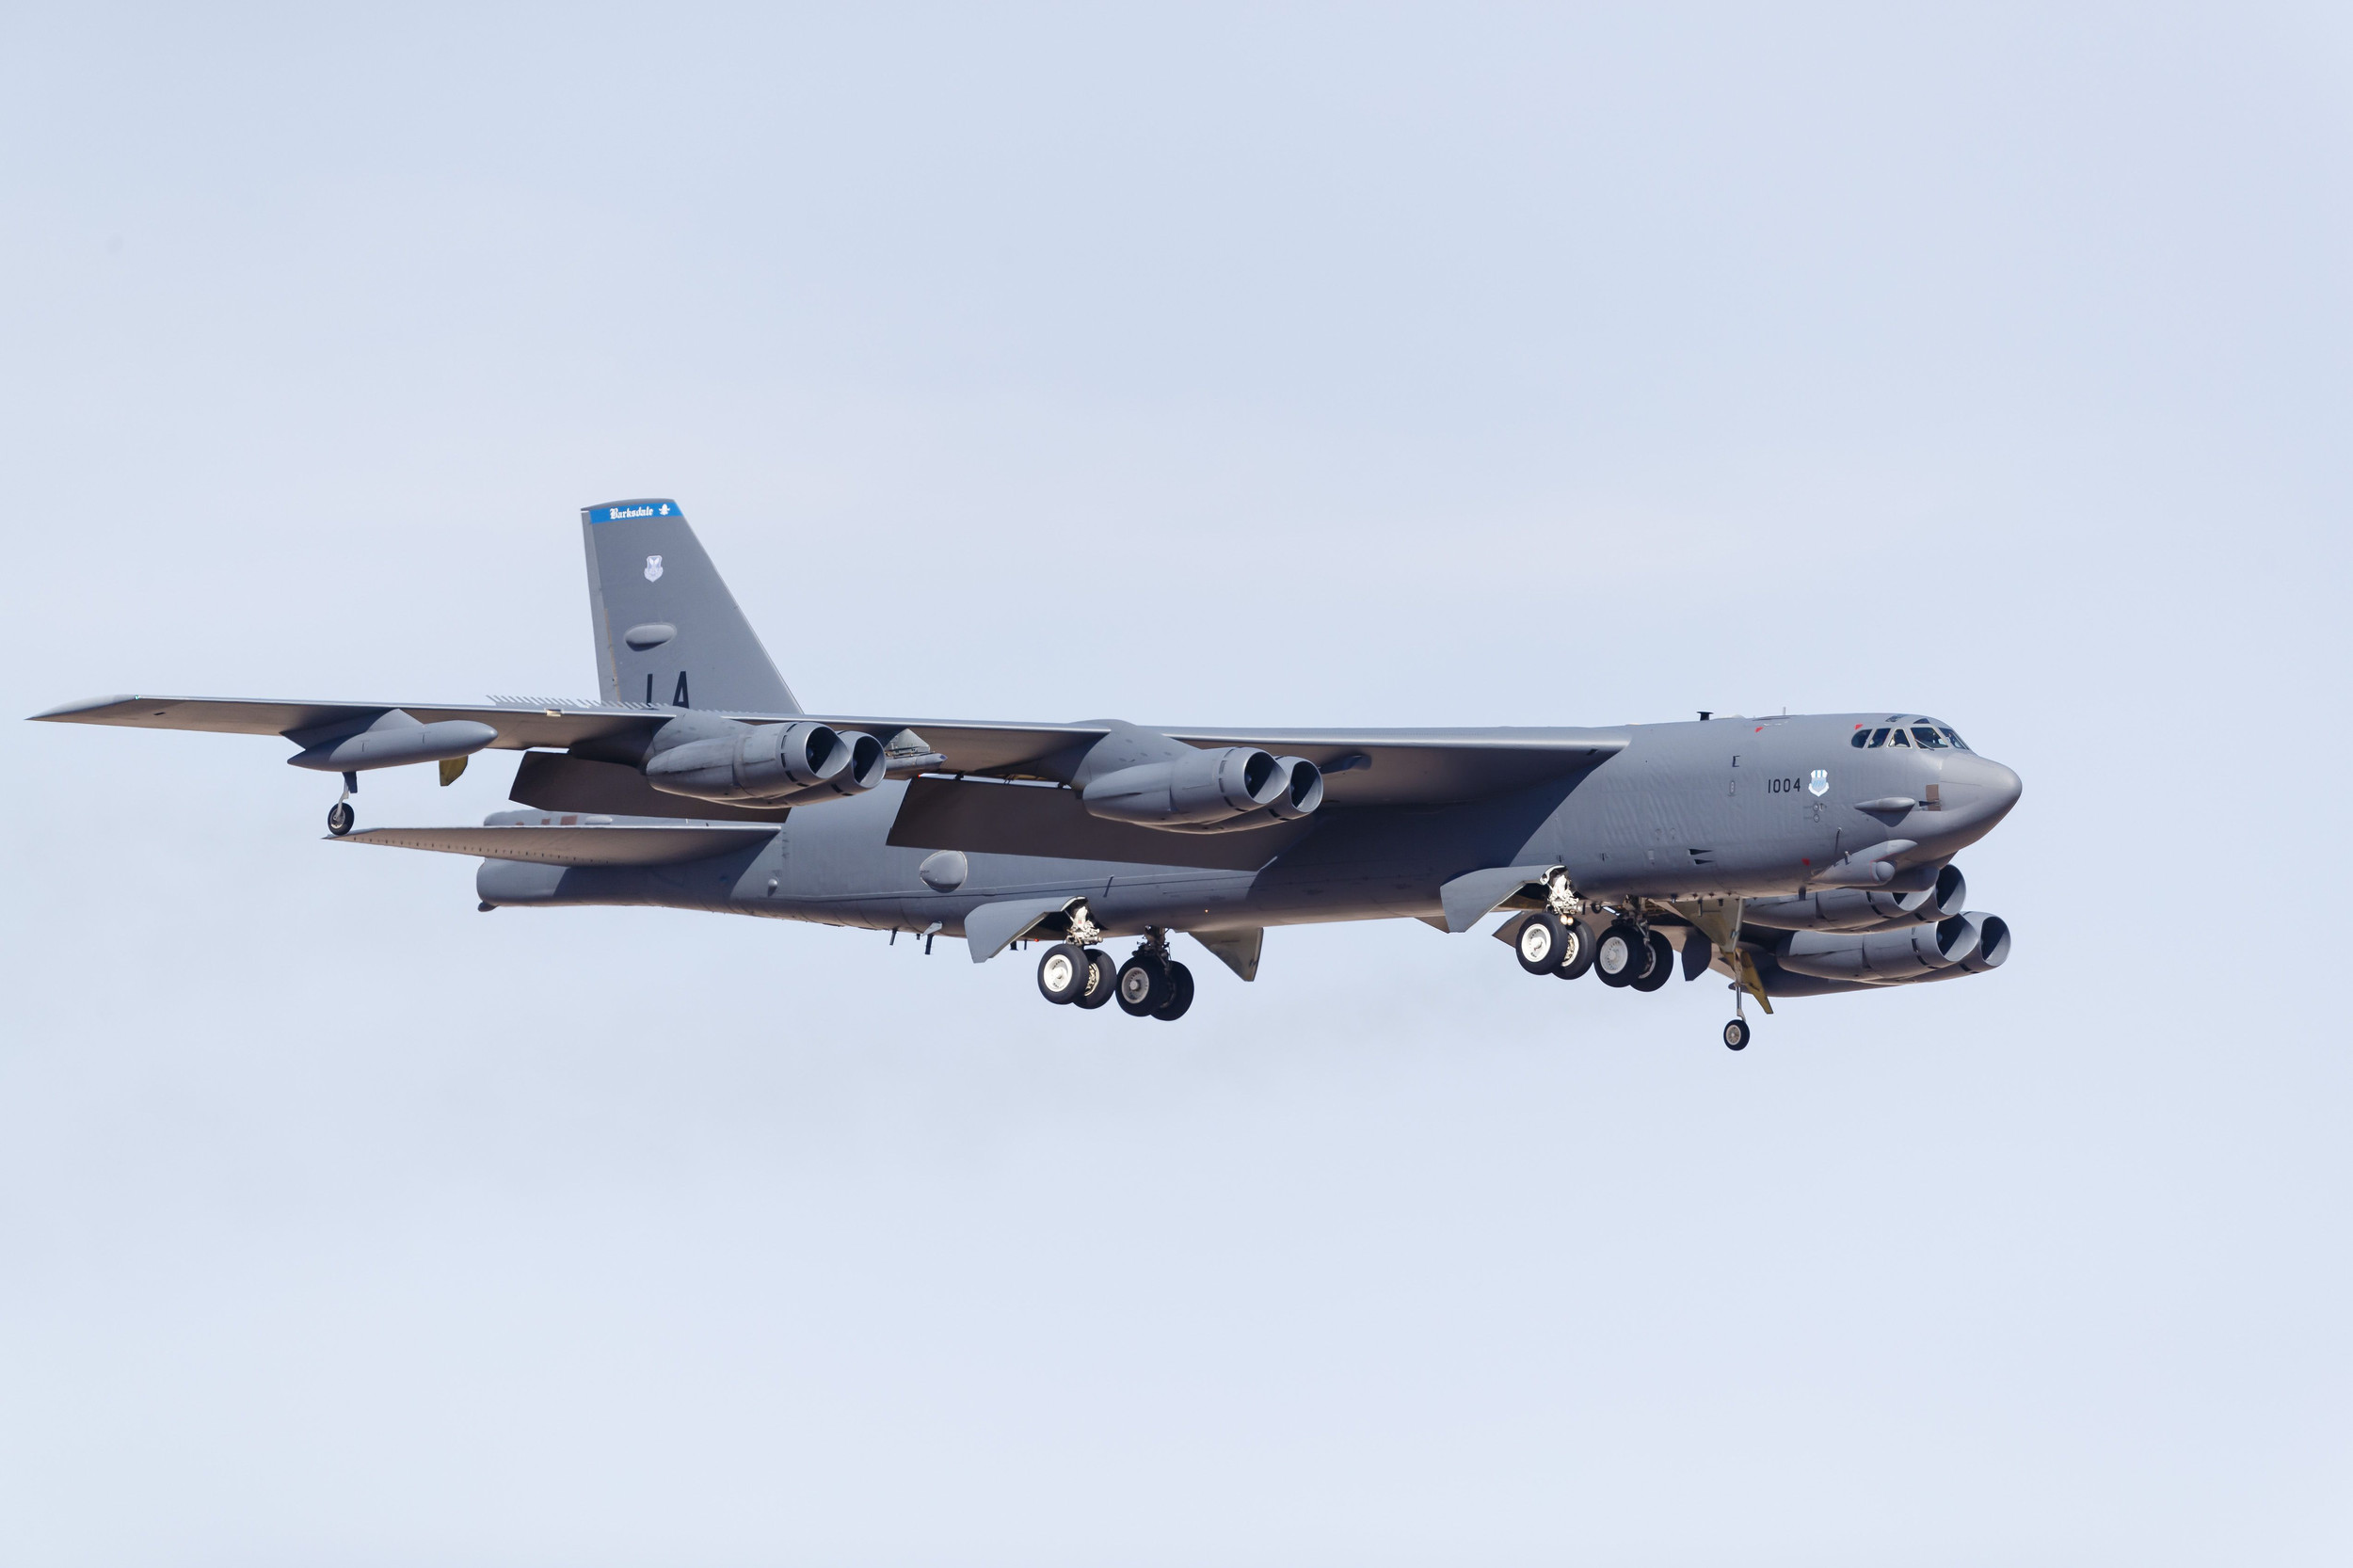 Norway Flies With B-52s Above Arctic; IOC For Their F-35s